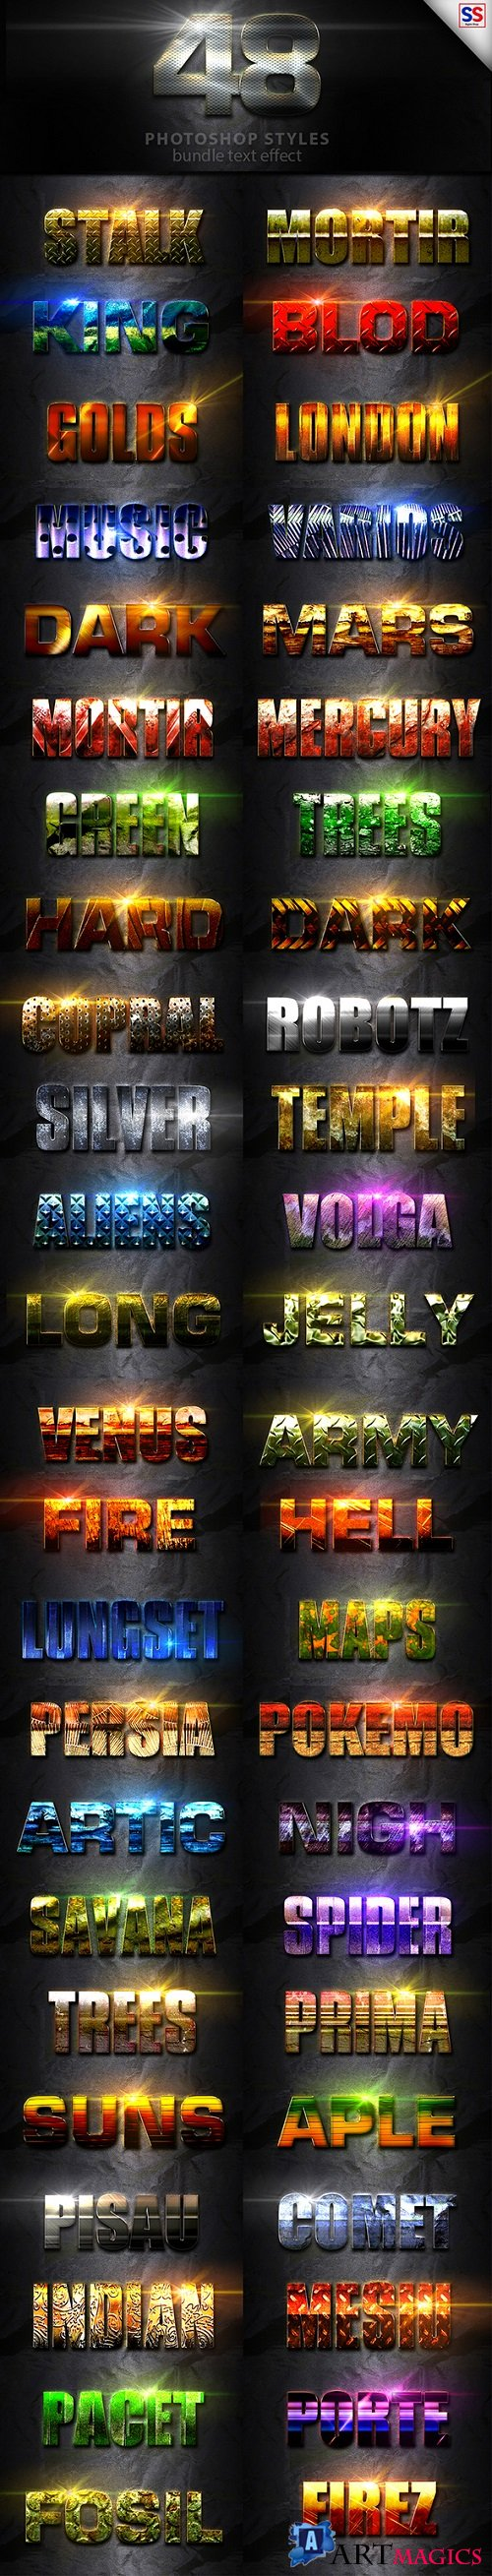 48 Text Effect Bundle Vol 2 - 20002530